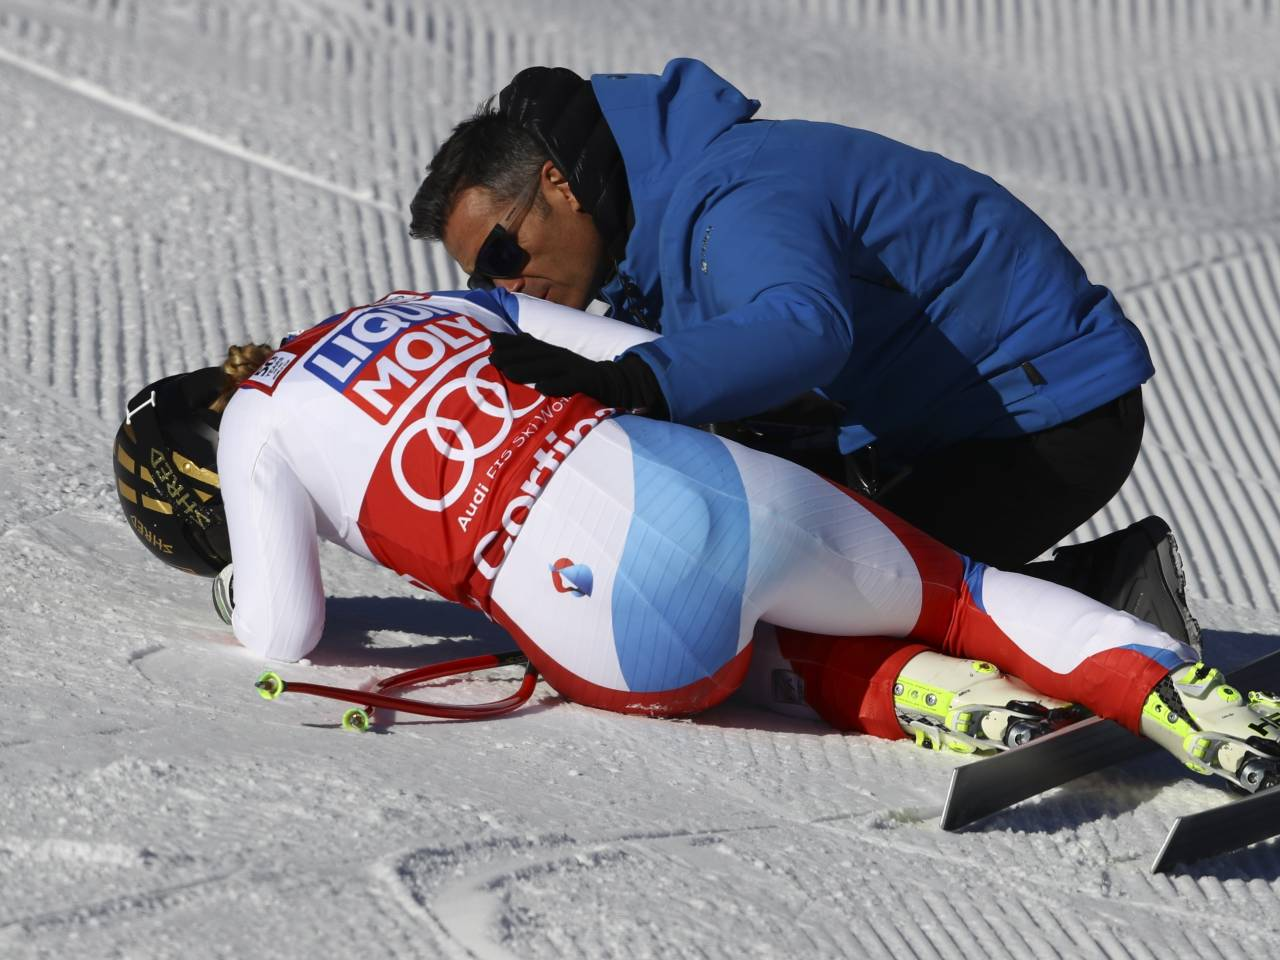 Lindsey Vonn crashes out of World Cup downhill